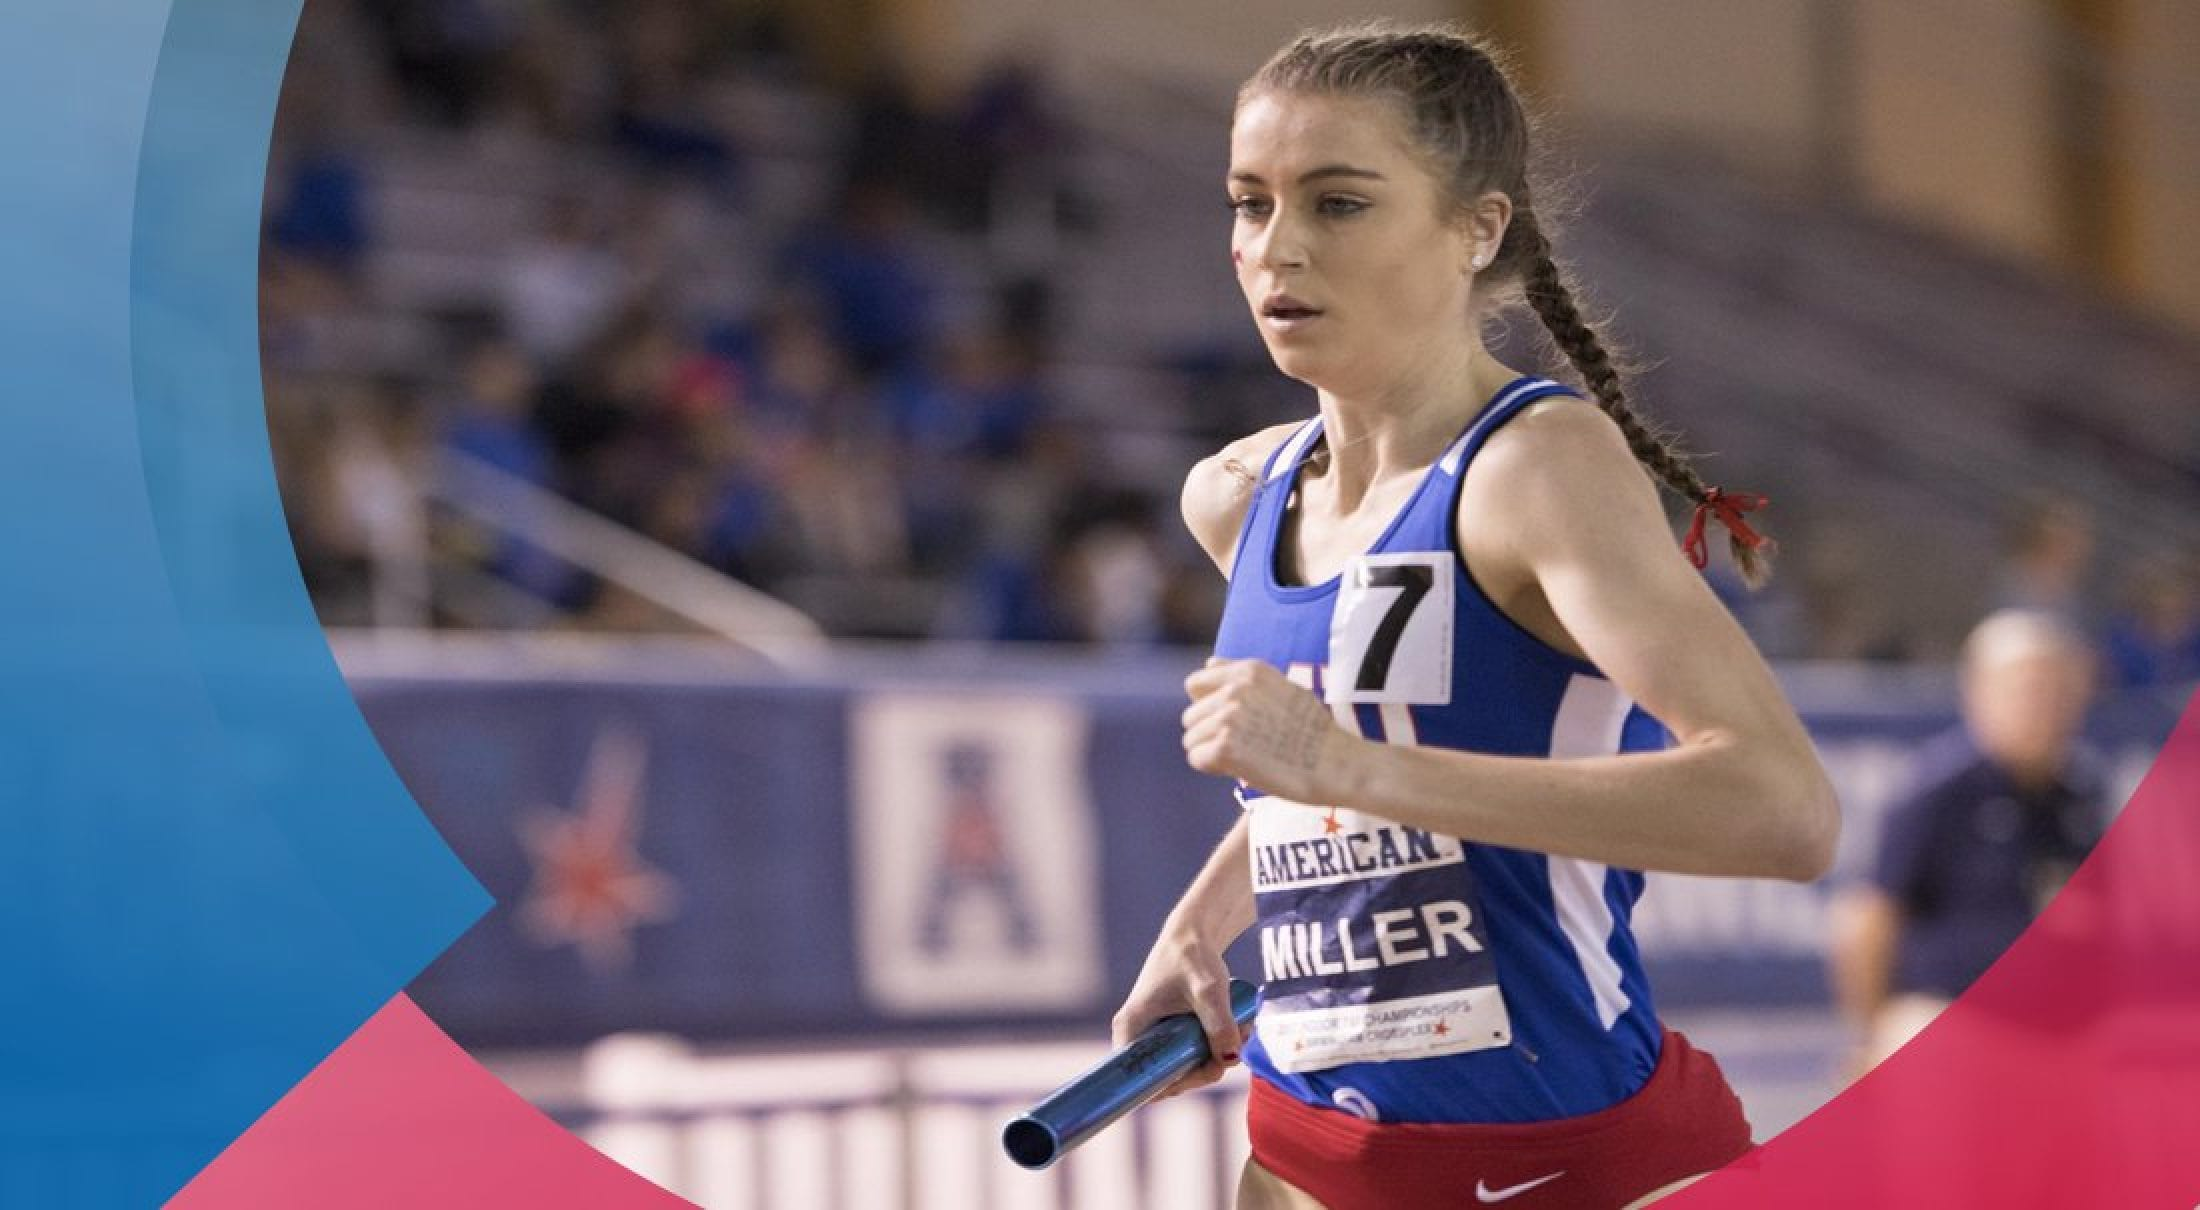 Hannah Miller set a personal best and broke an SMU record in the 3000m on January 20.